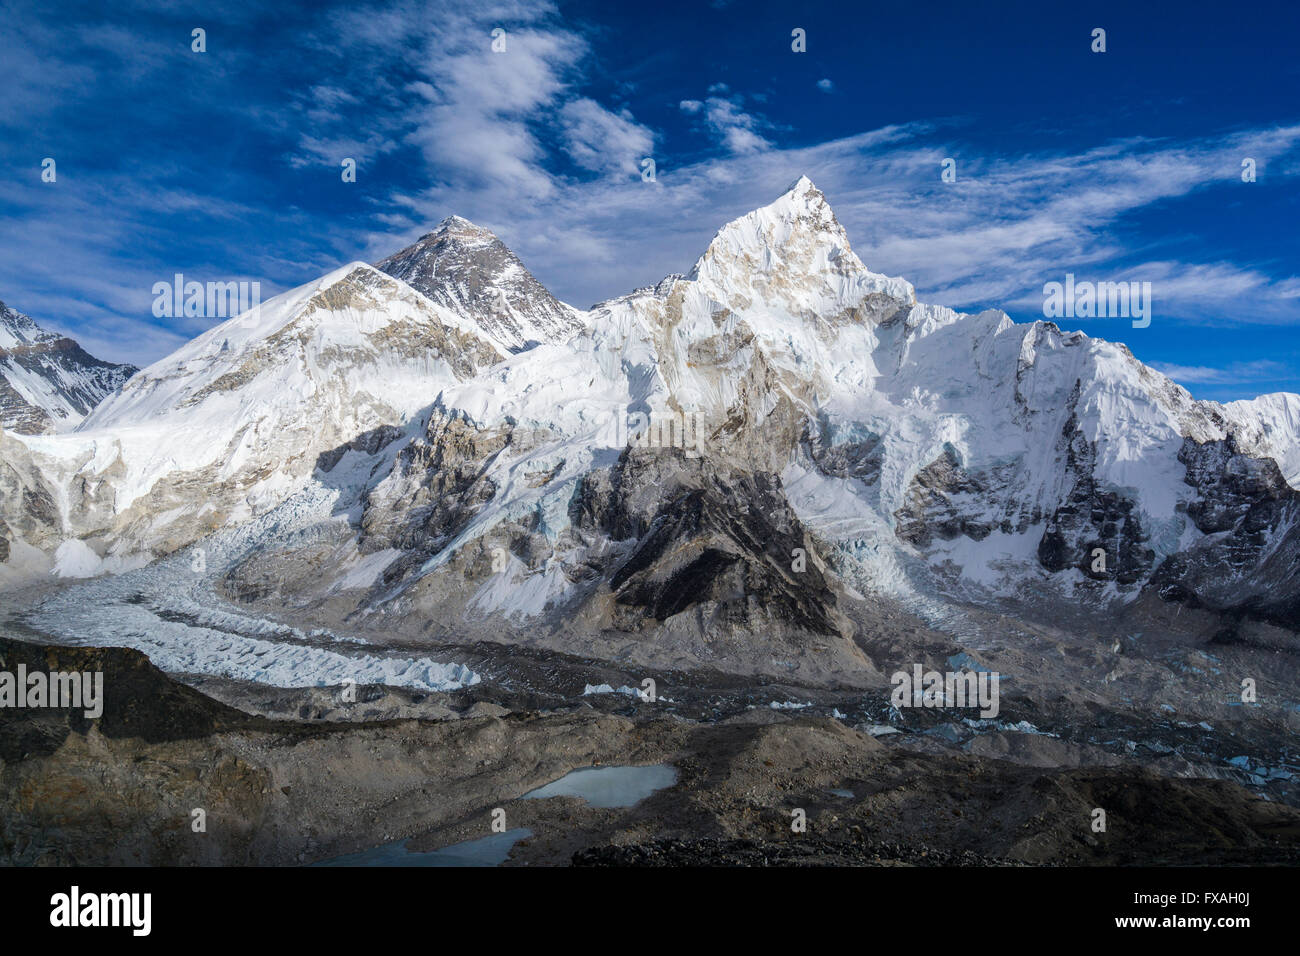 The mountain massifs around Mt. Everest (8848m) and Nuptse (7861m) as seen from Kala Pathar (5545m), Gorakshep, - Stock Image